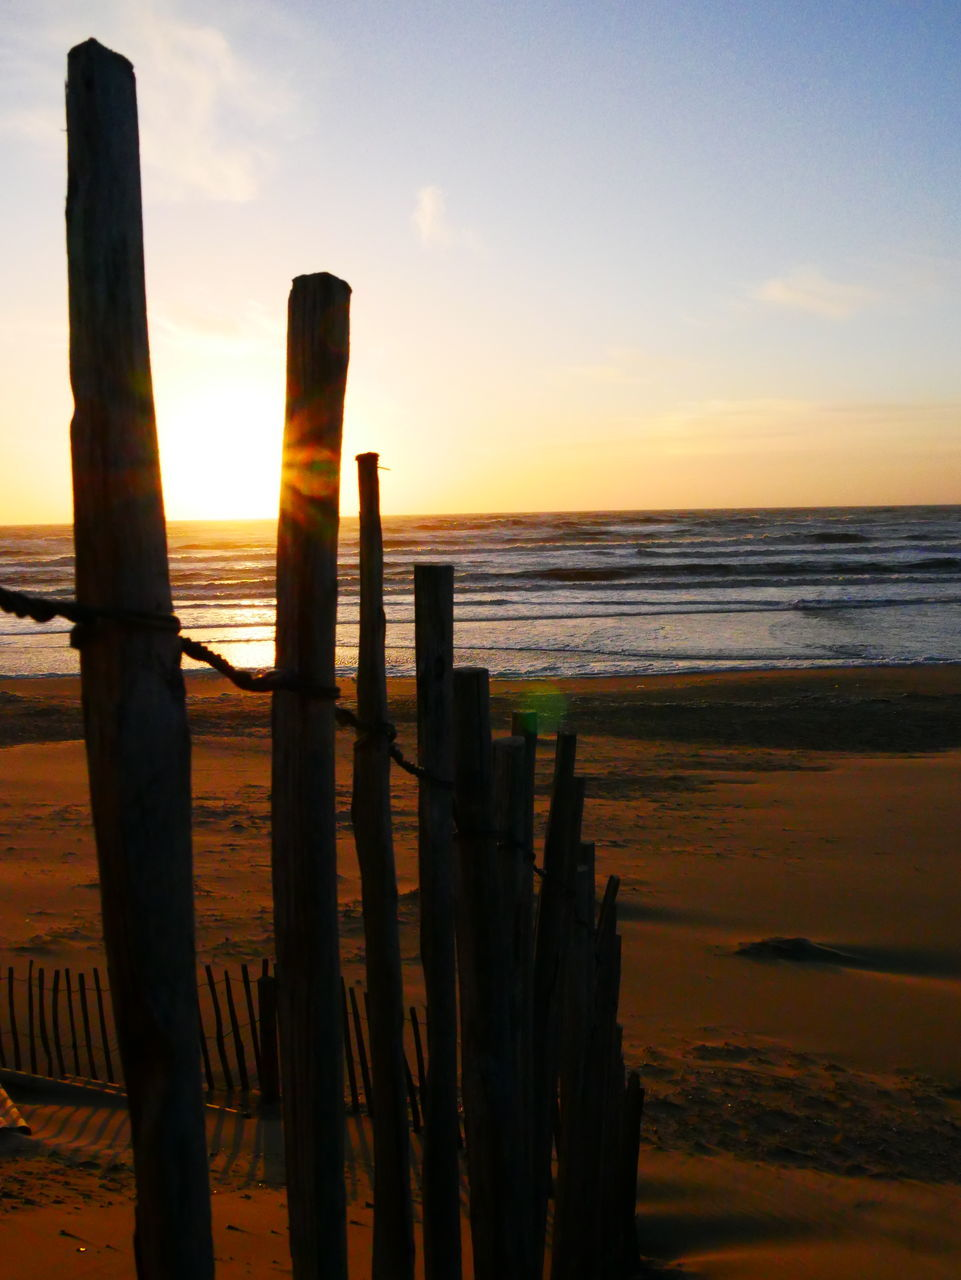 sea, sunset, scenics, nature, beauty in nature, tranquility, tranquil scene, horizon over water, beach, sky, no people, outdoors, water, wooden post, close-up, day